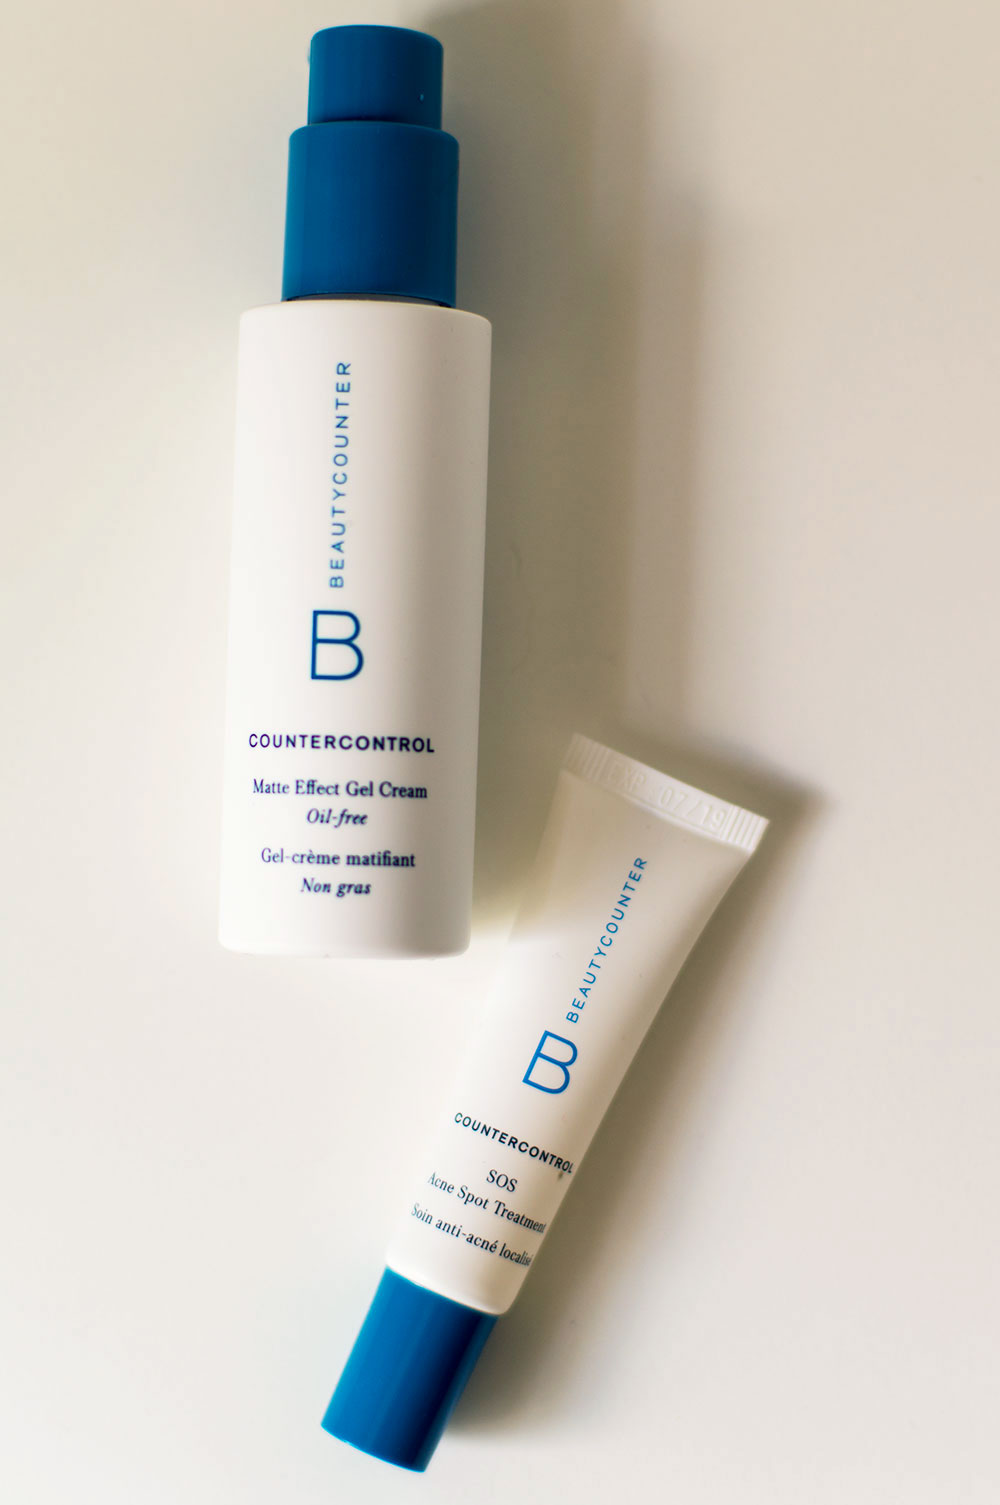 Two hero products from the line that almost EVERYONE will love!